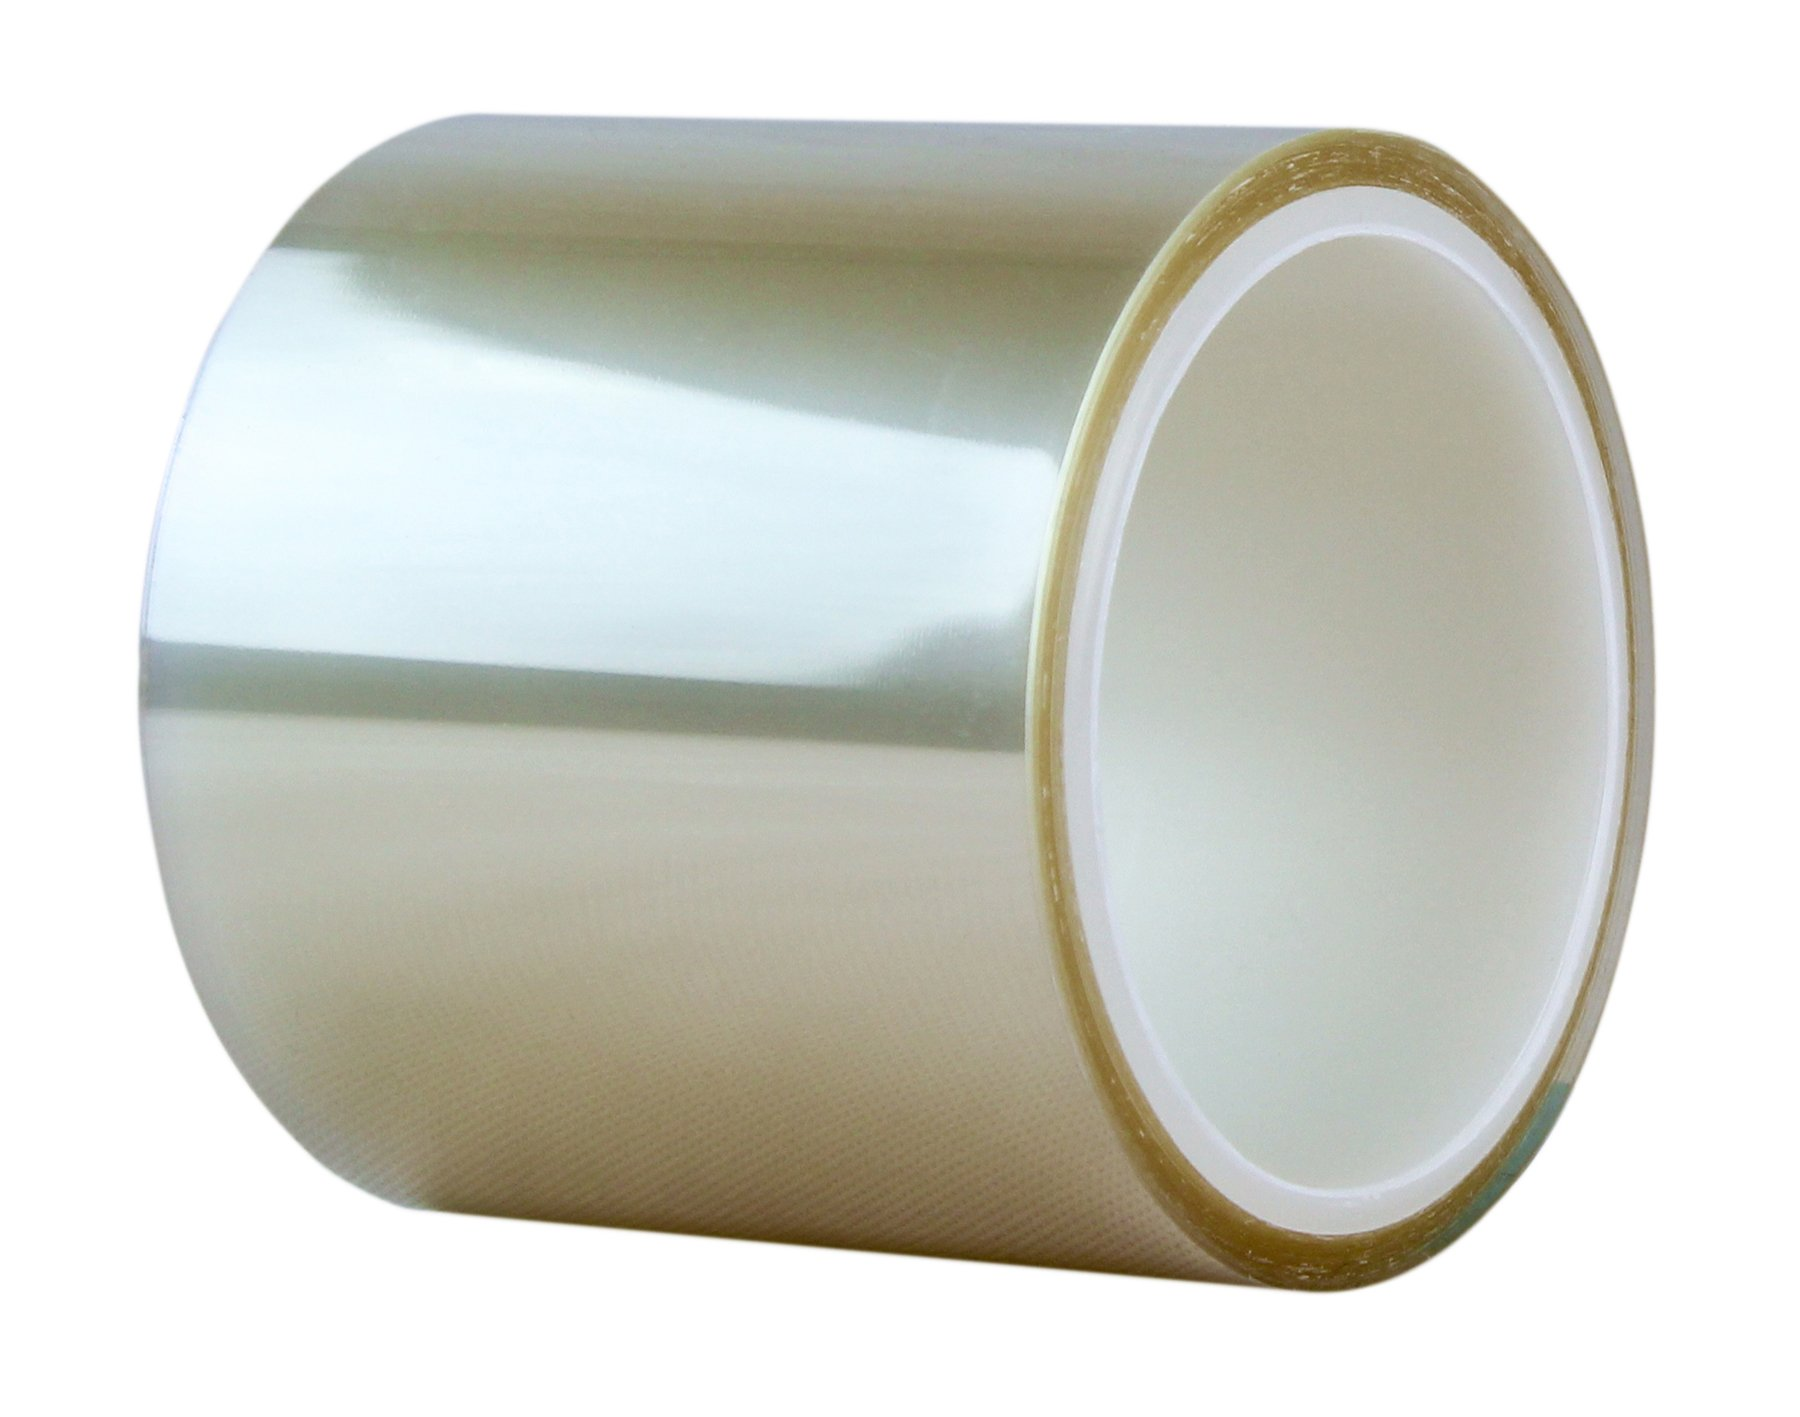 TIERRAFILM Cake Collar, Chocolate and Cake Decorating Acetate Sheet CLEAR ACETATE ROLL - 3'' x 32 feet 125 micron